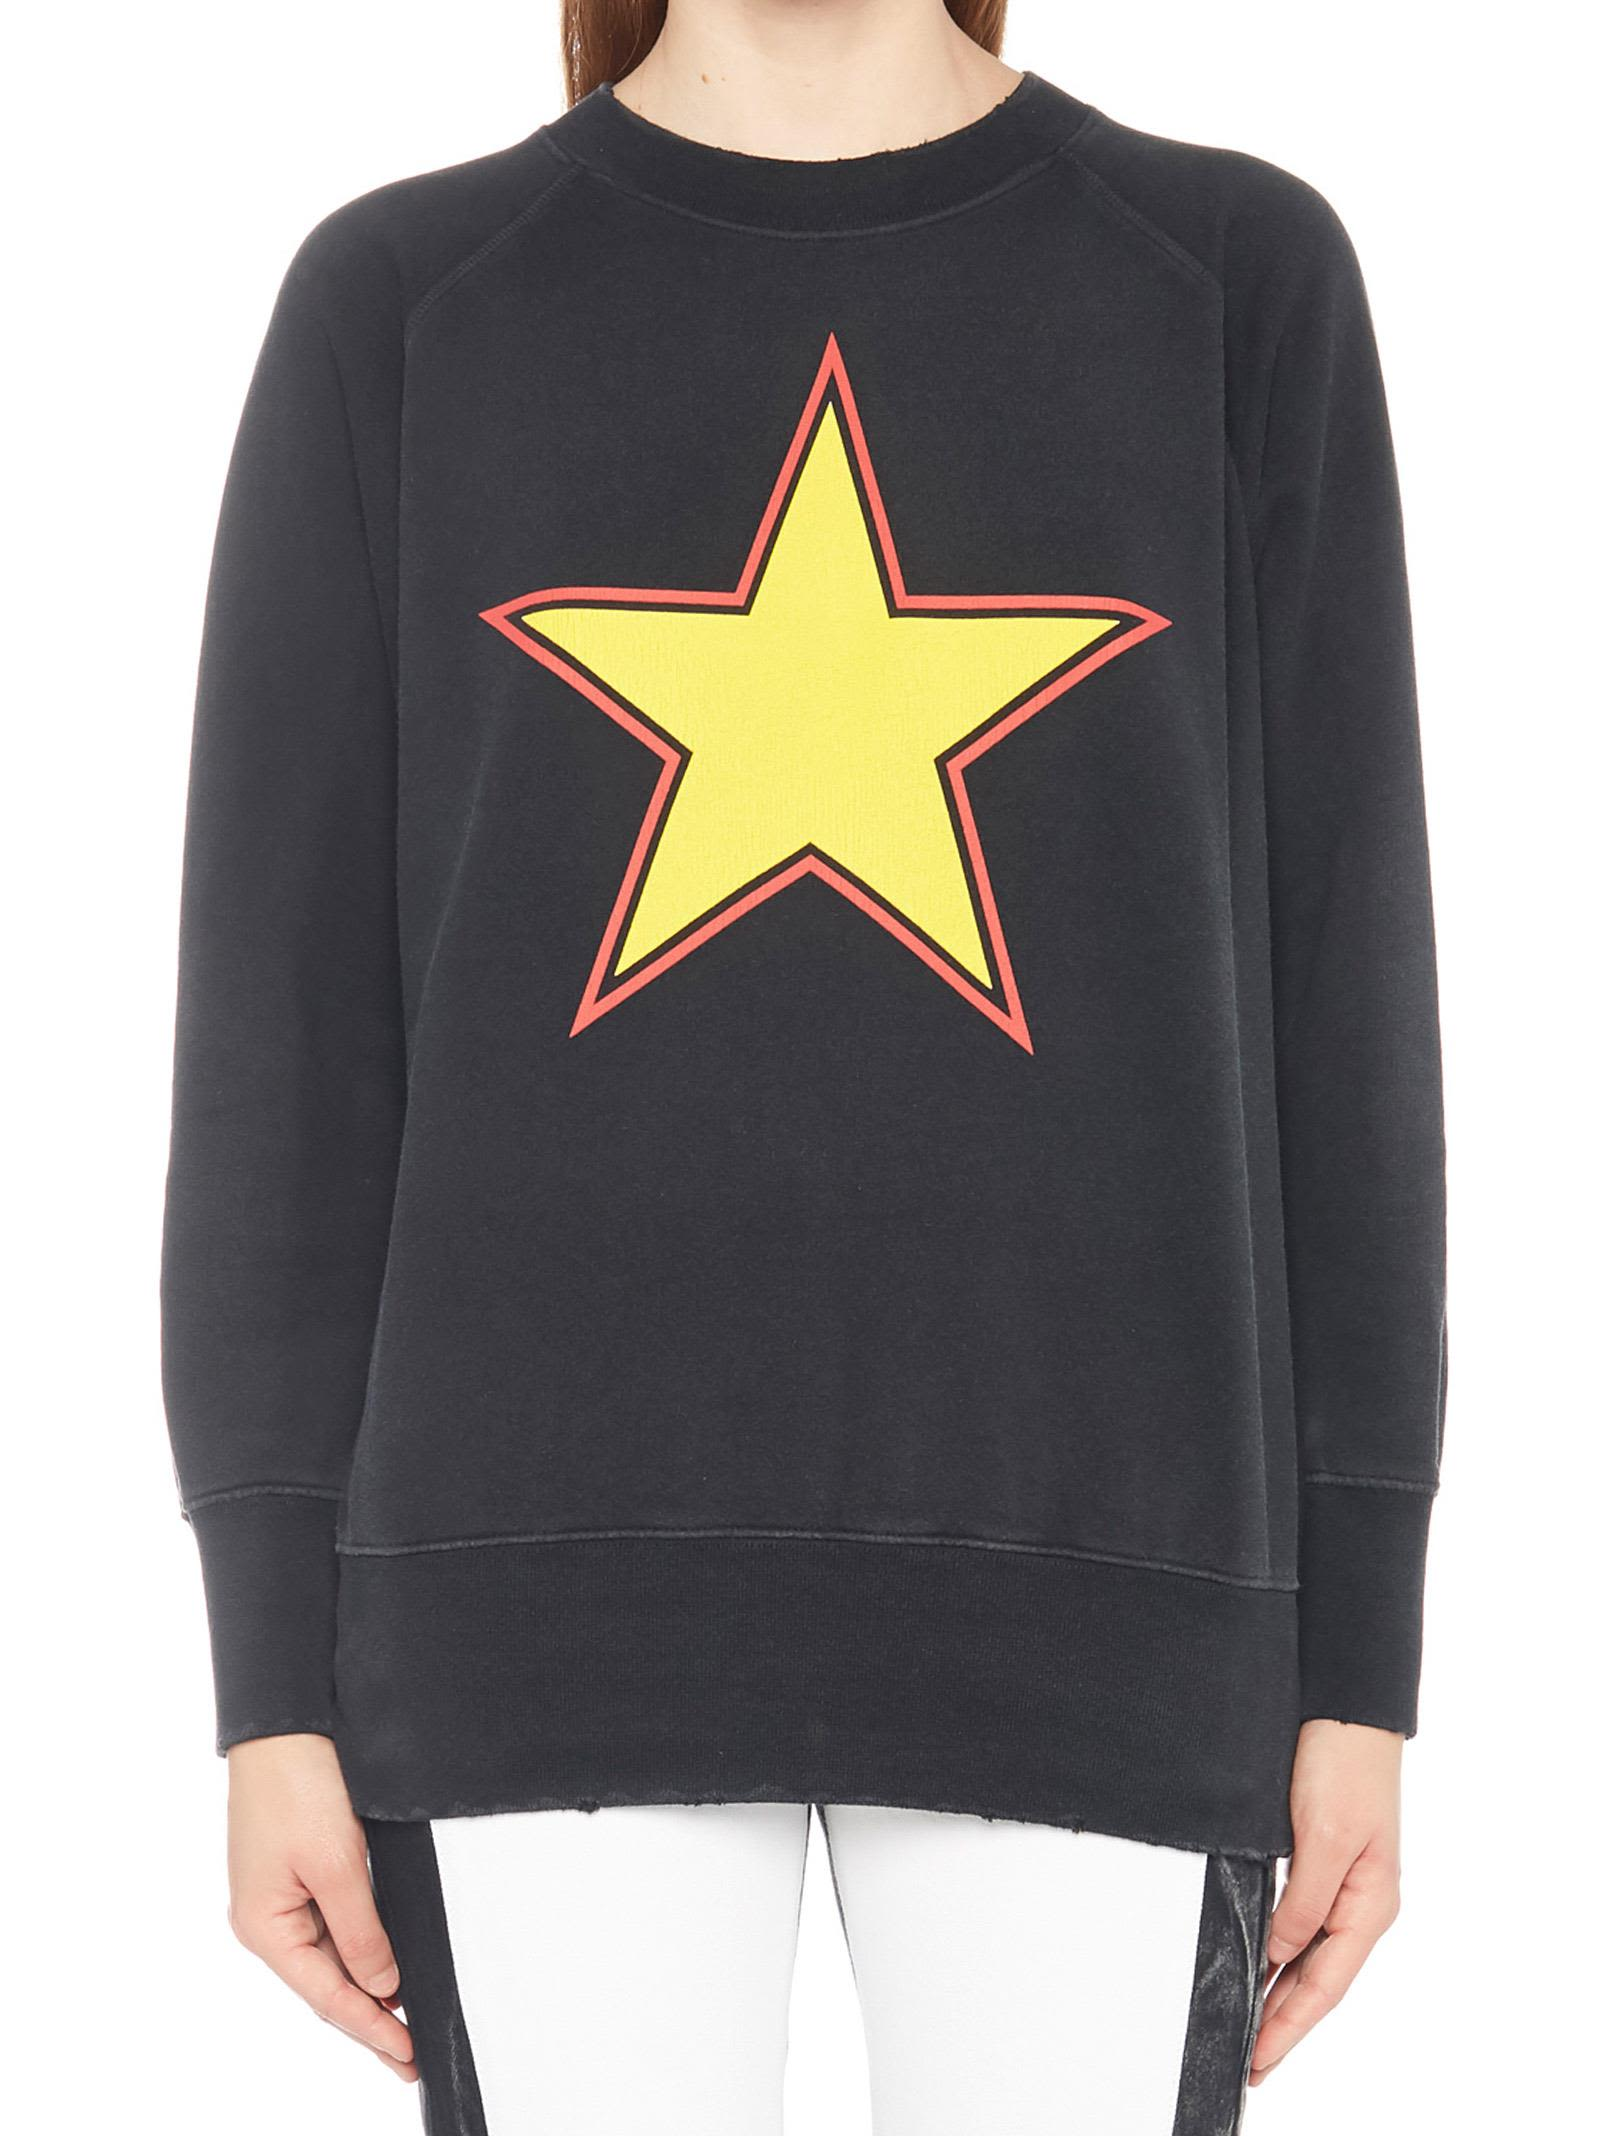 Givenchy 'star' Sweatshirt